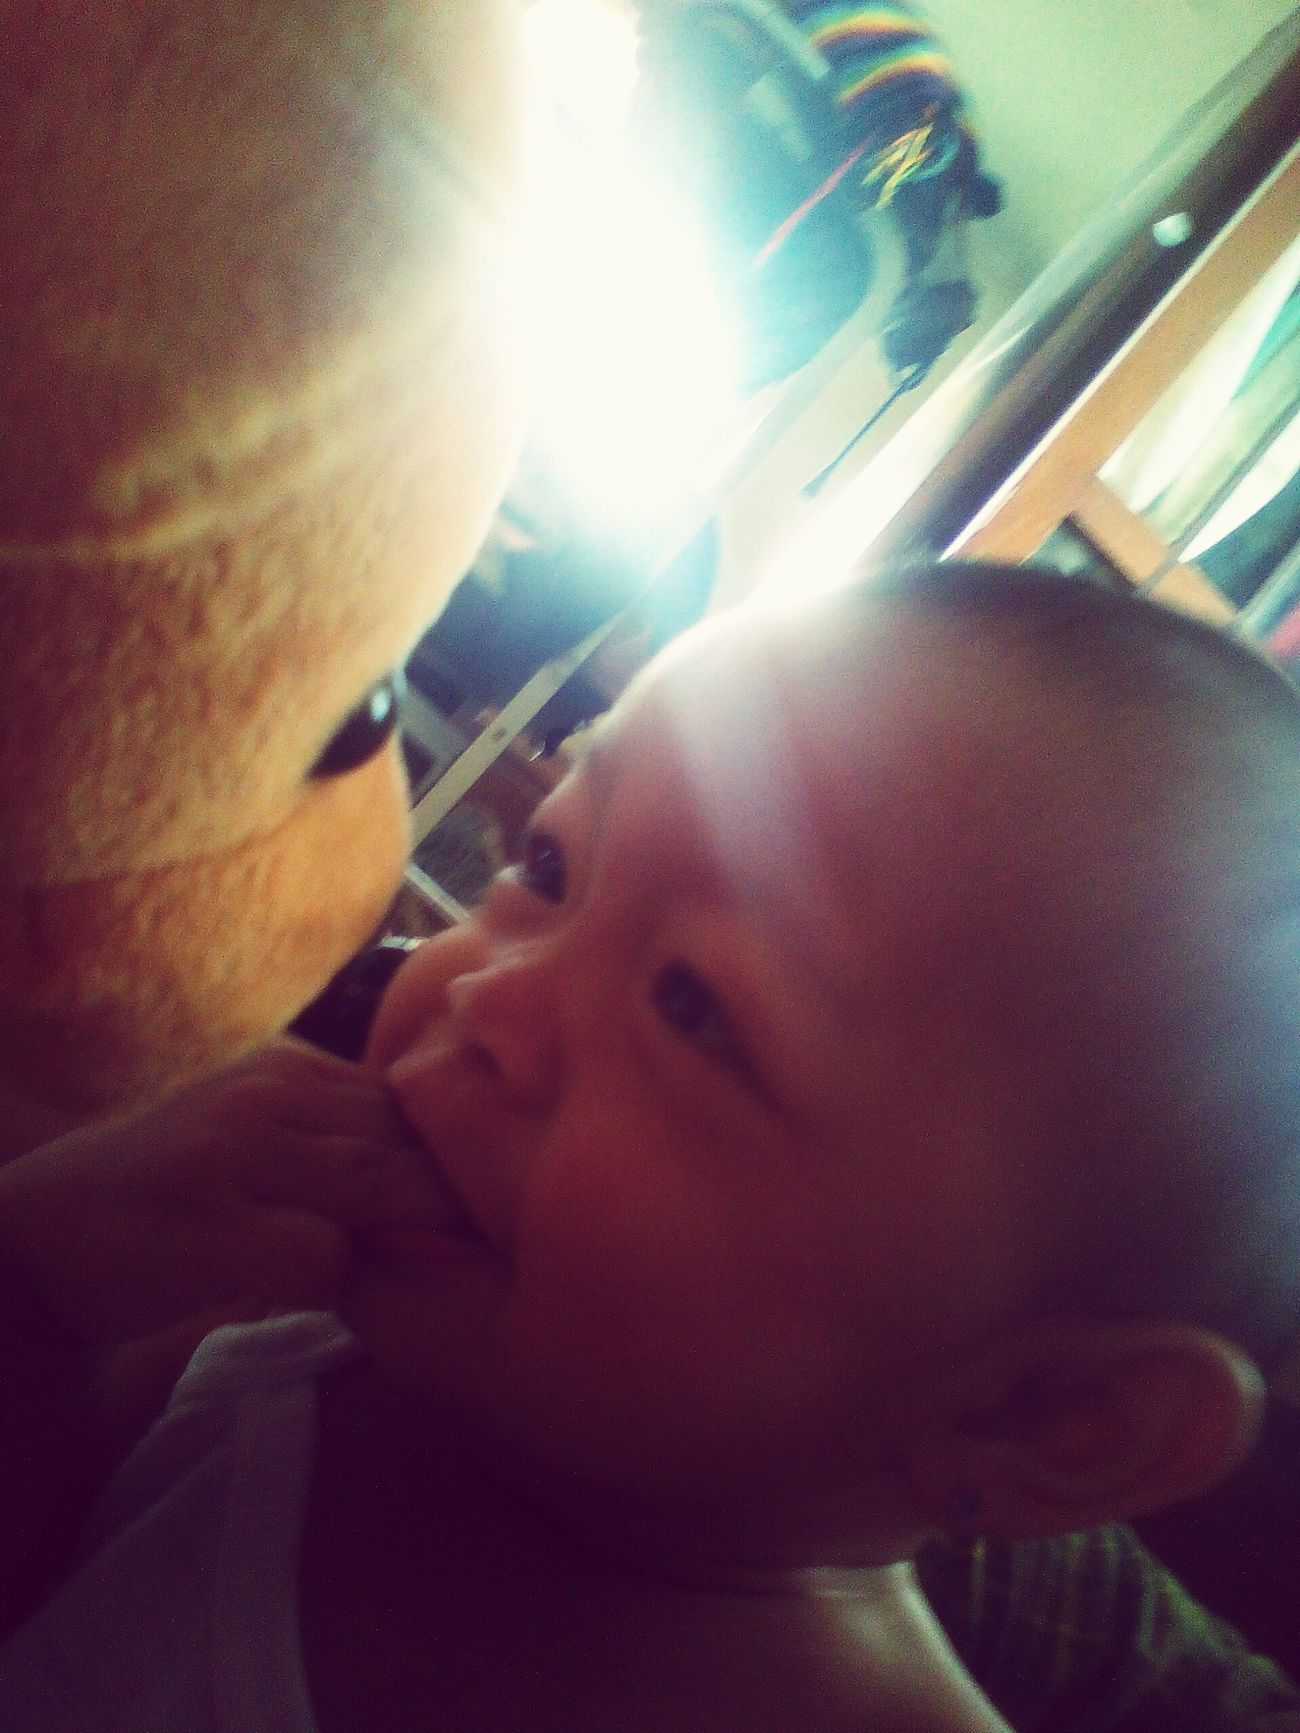 Playing with my bear